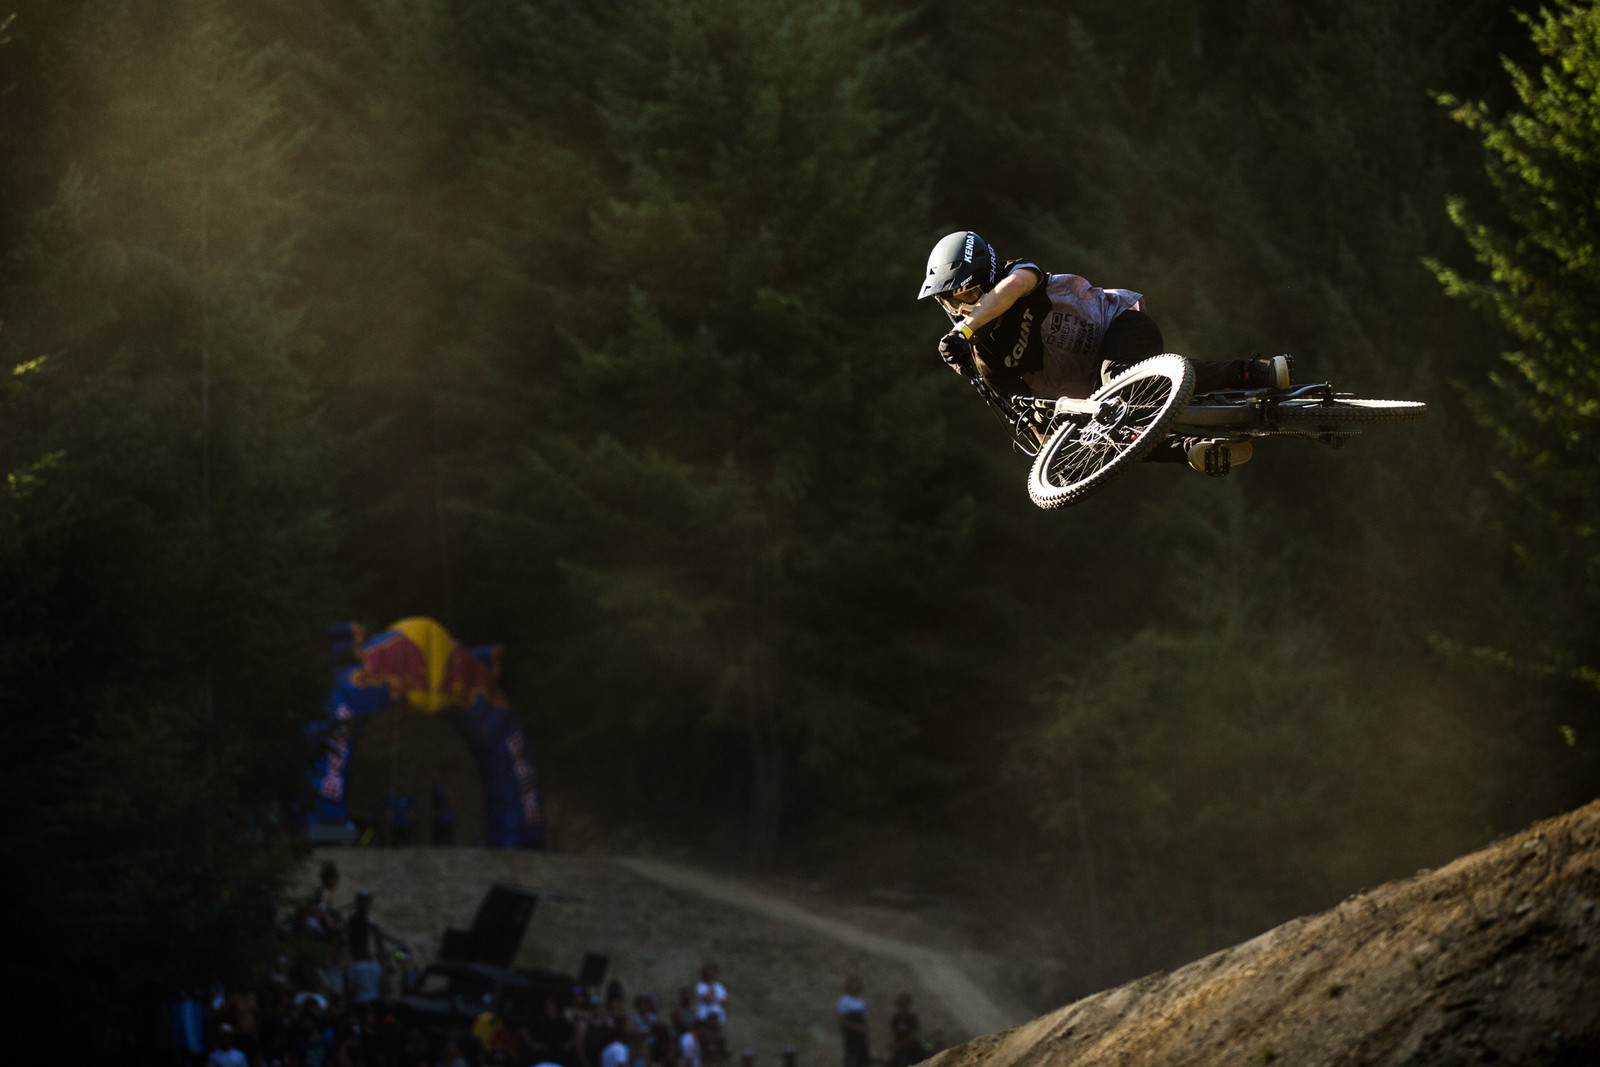 Reece Wallace - McGazza Fest Dream Track Jam - Mountain Biking Pictures - Vital MTB